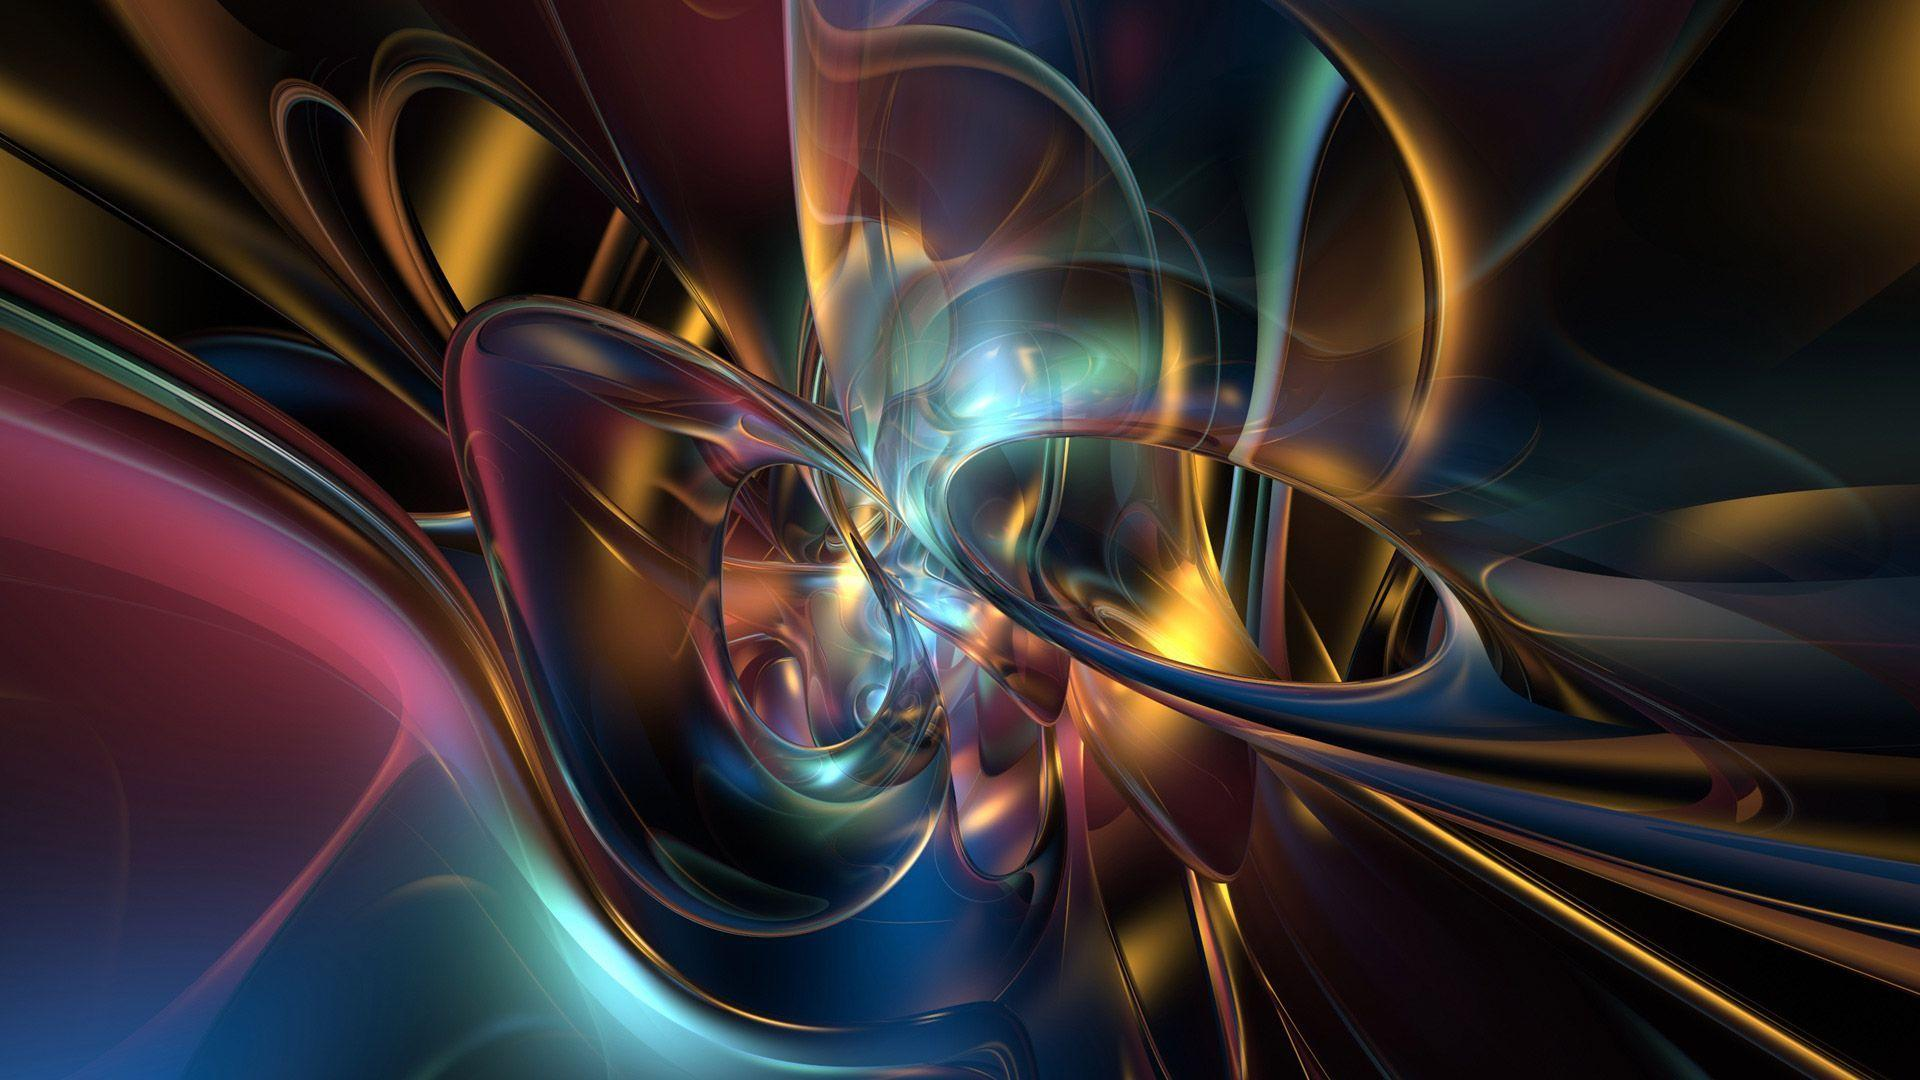 hd wallpapers widescreen 1080p abstract